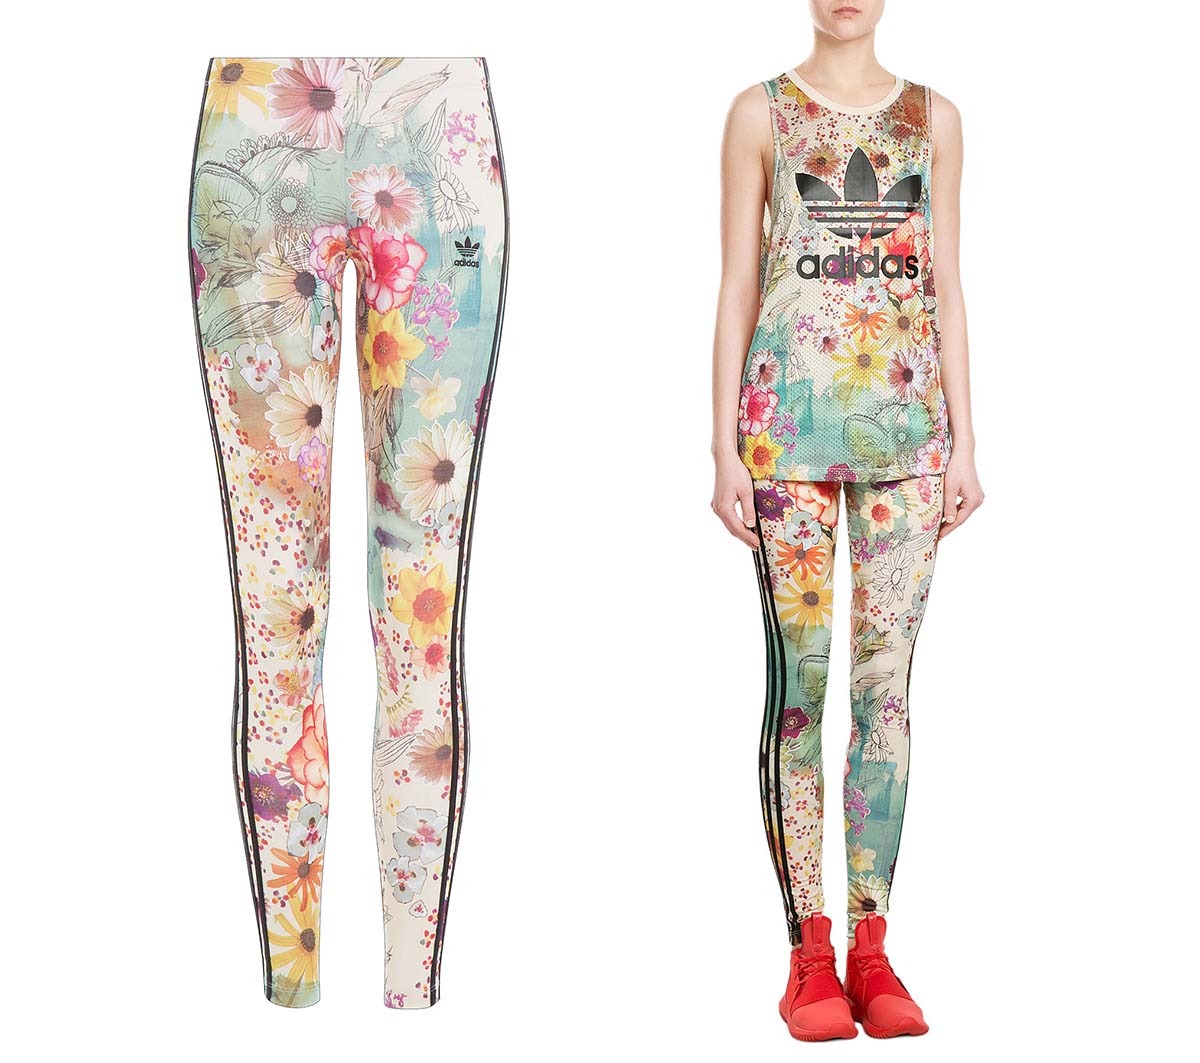 Adidas Originals Floral Print Leggings and Tank